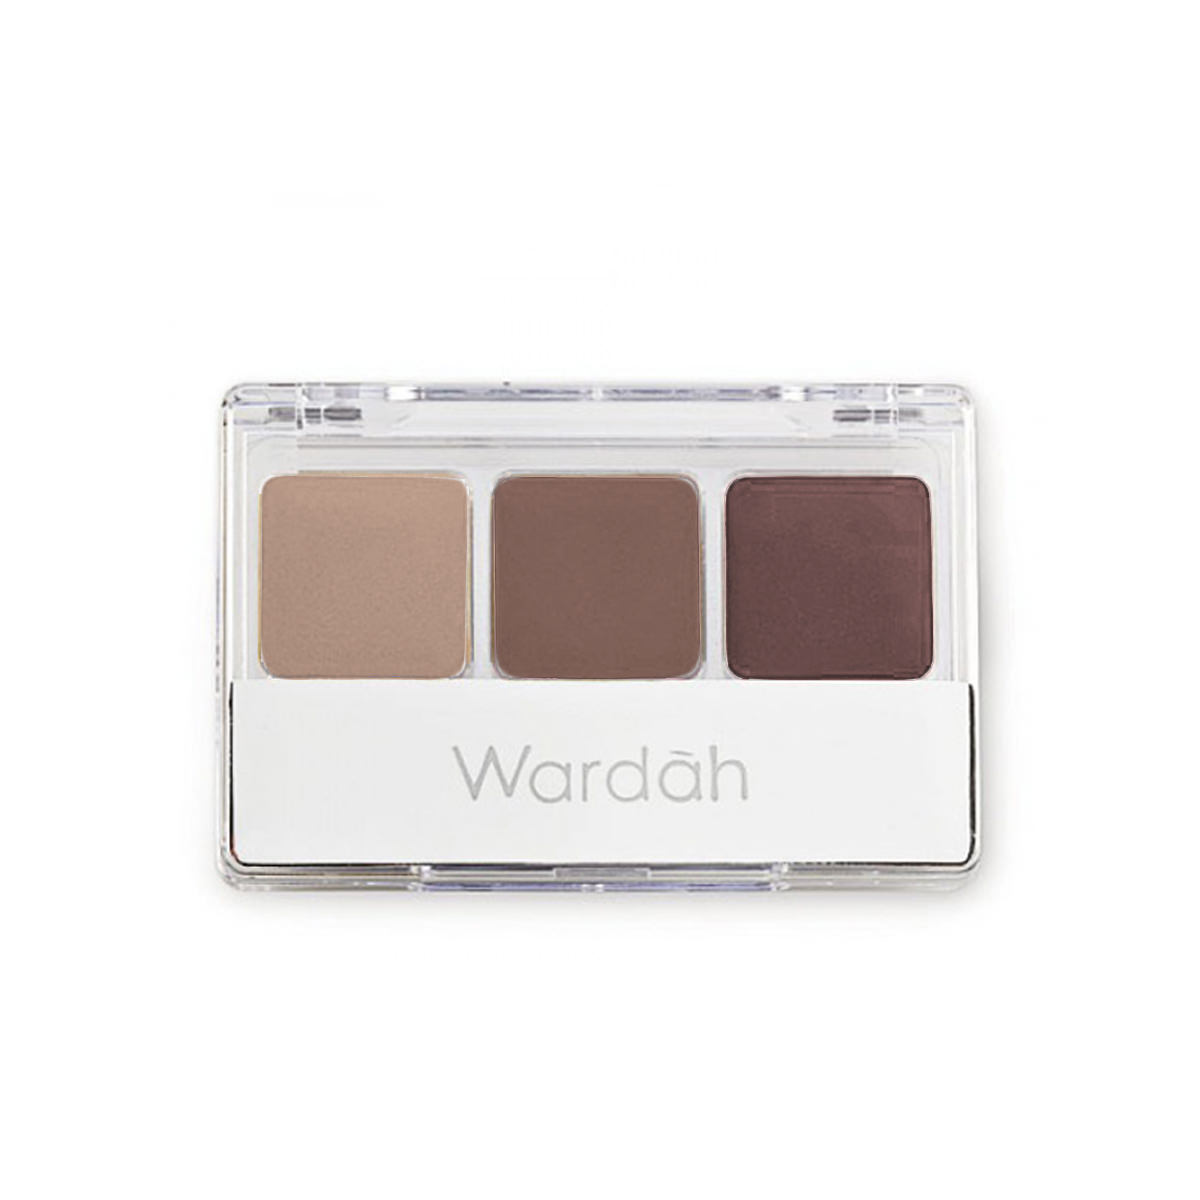 Wardah---Eye-Shadow-G-sfw(1)